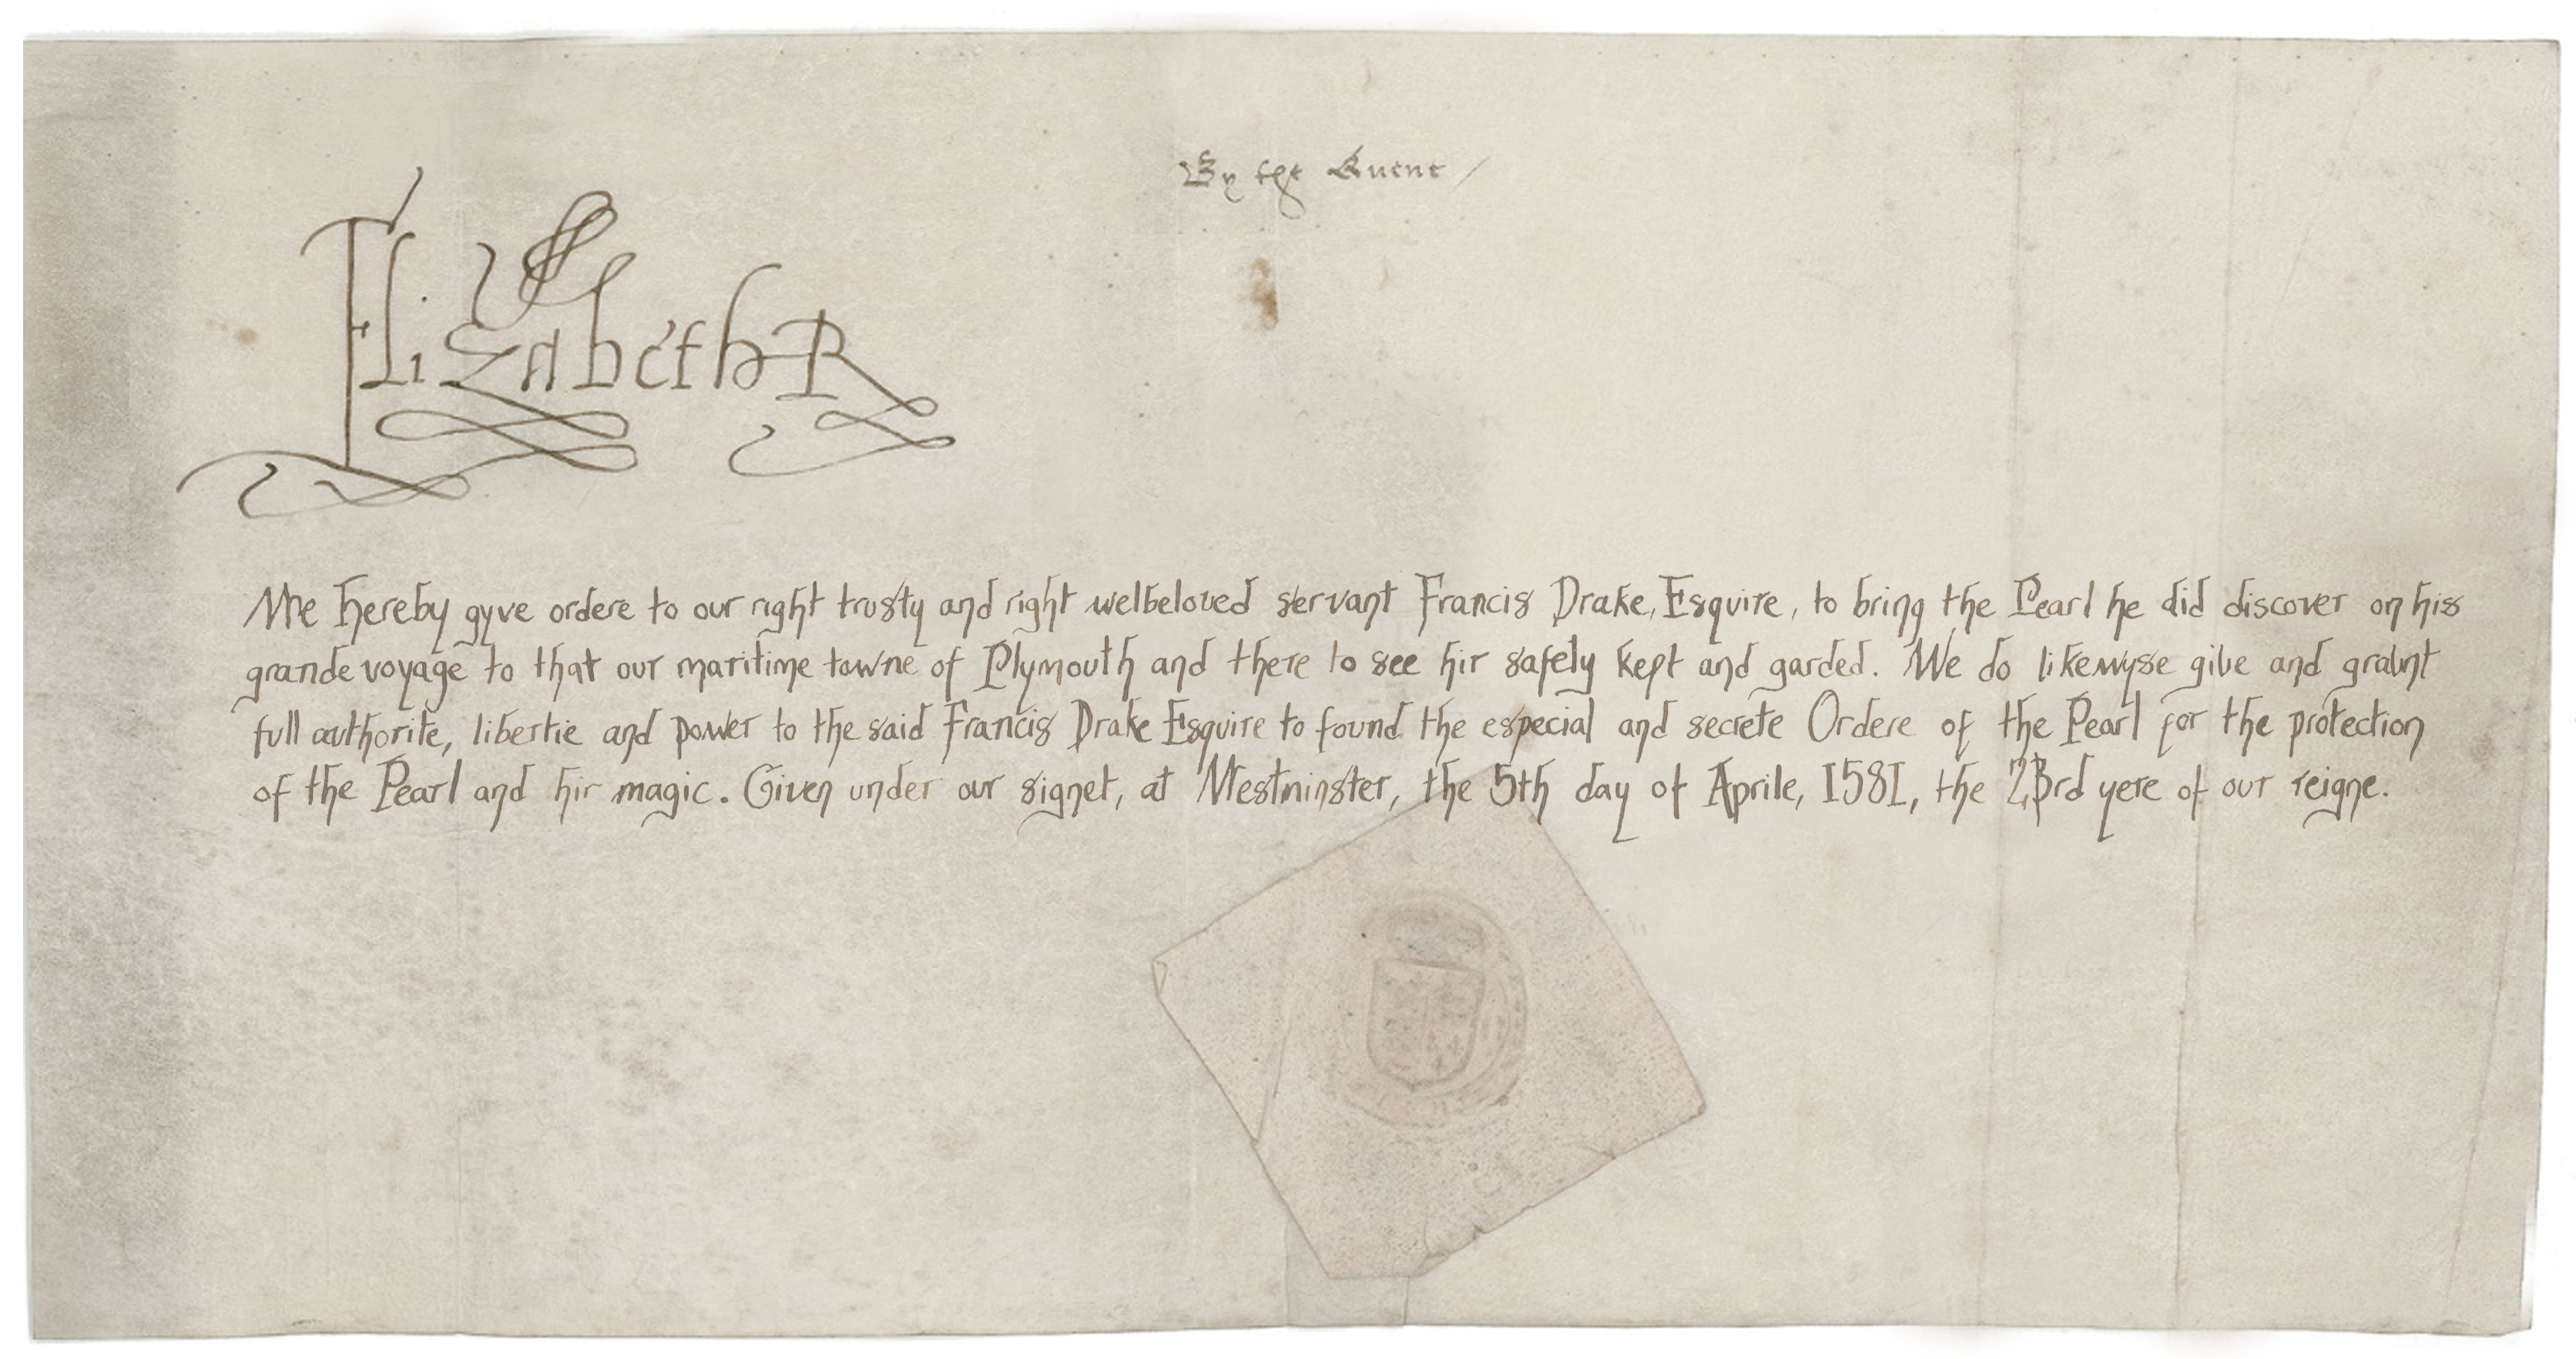 Queen Elizabeth I letter to Drake establishing the Order of the Pearl